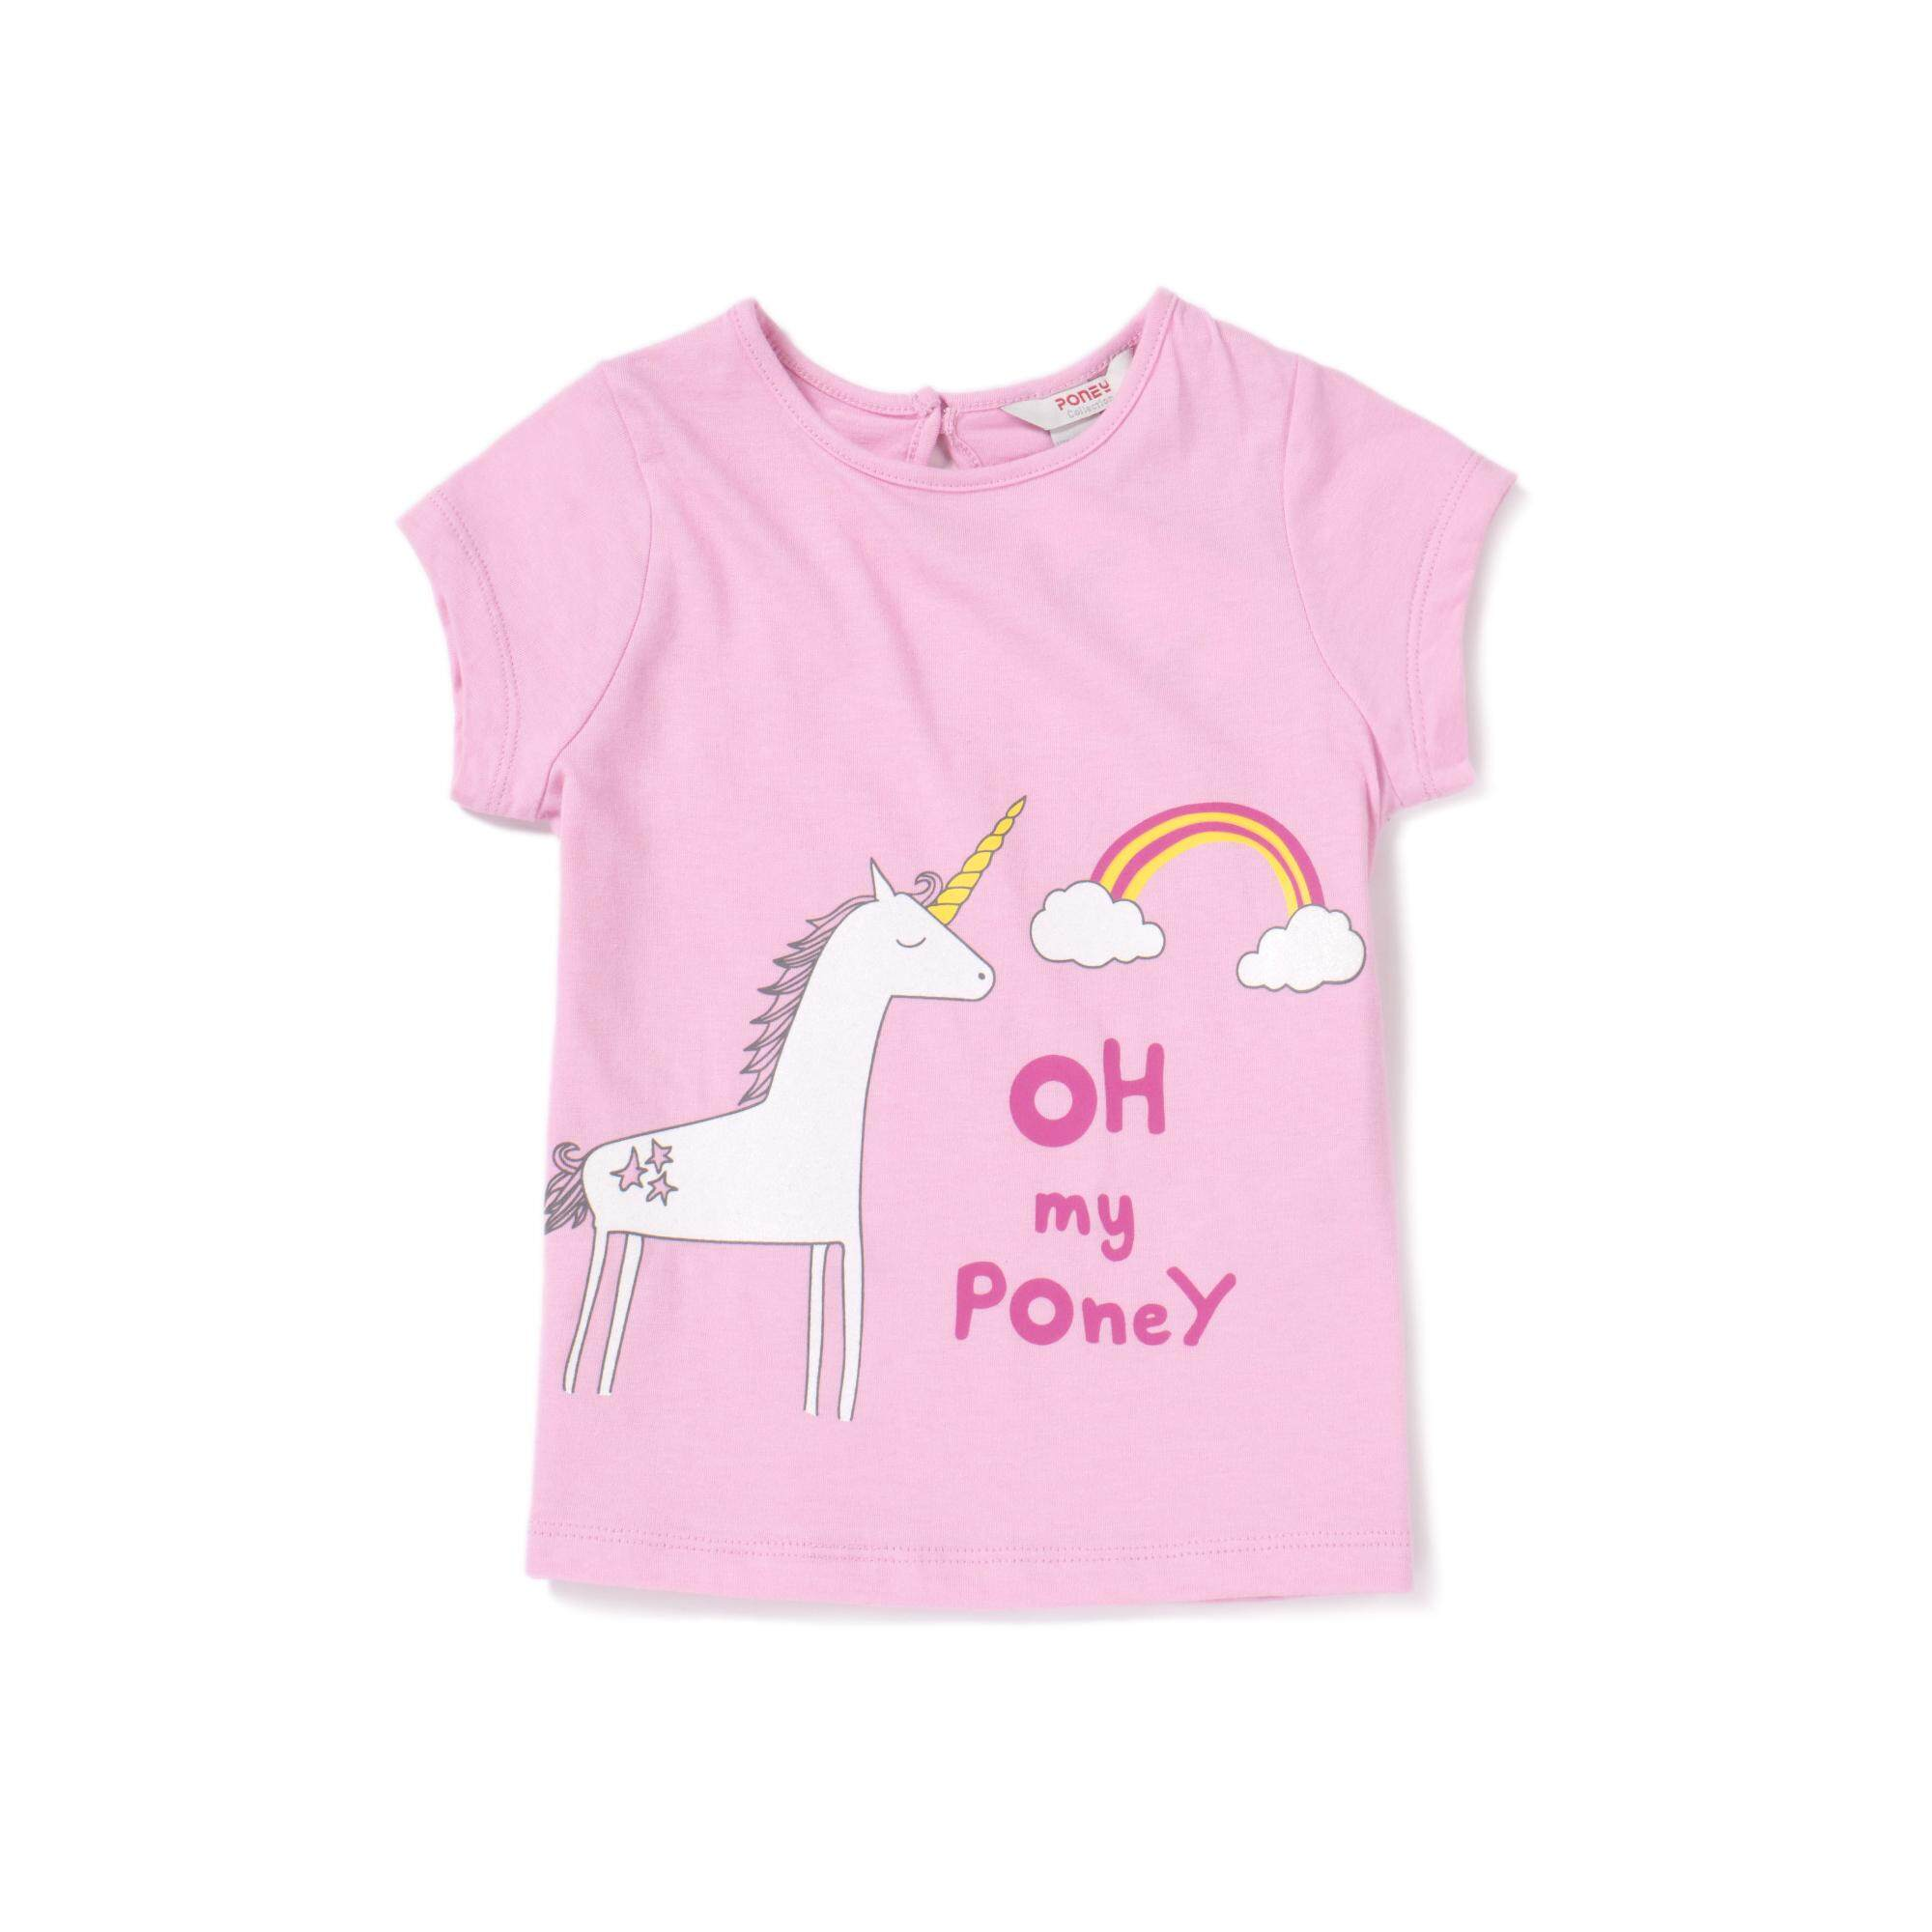 7fdca6994bb2a3 PONEY OH MY UNICORN TEE GIRL TOP VB SP19 7882BK (LIGHT PURPLE)